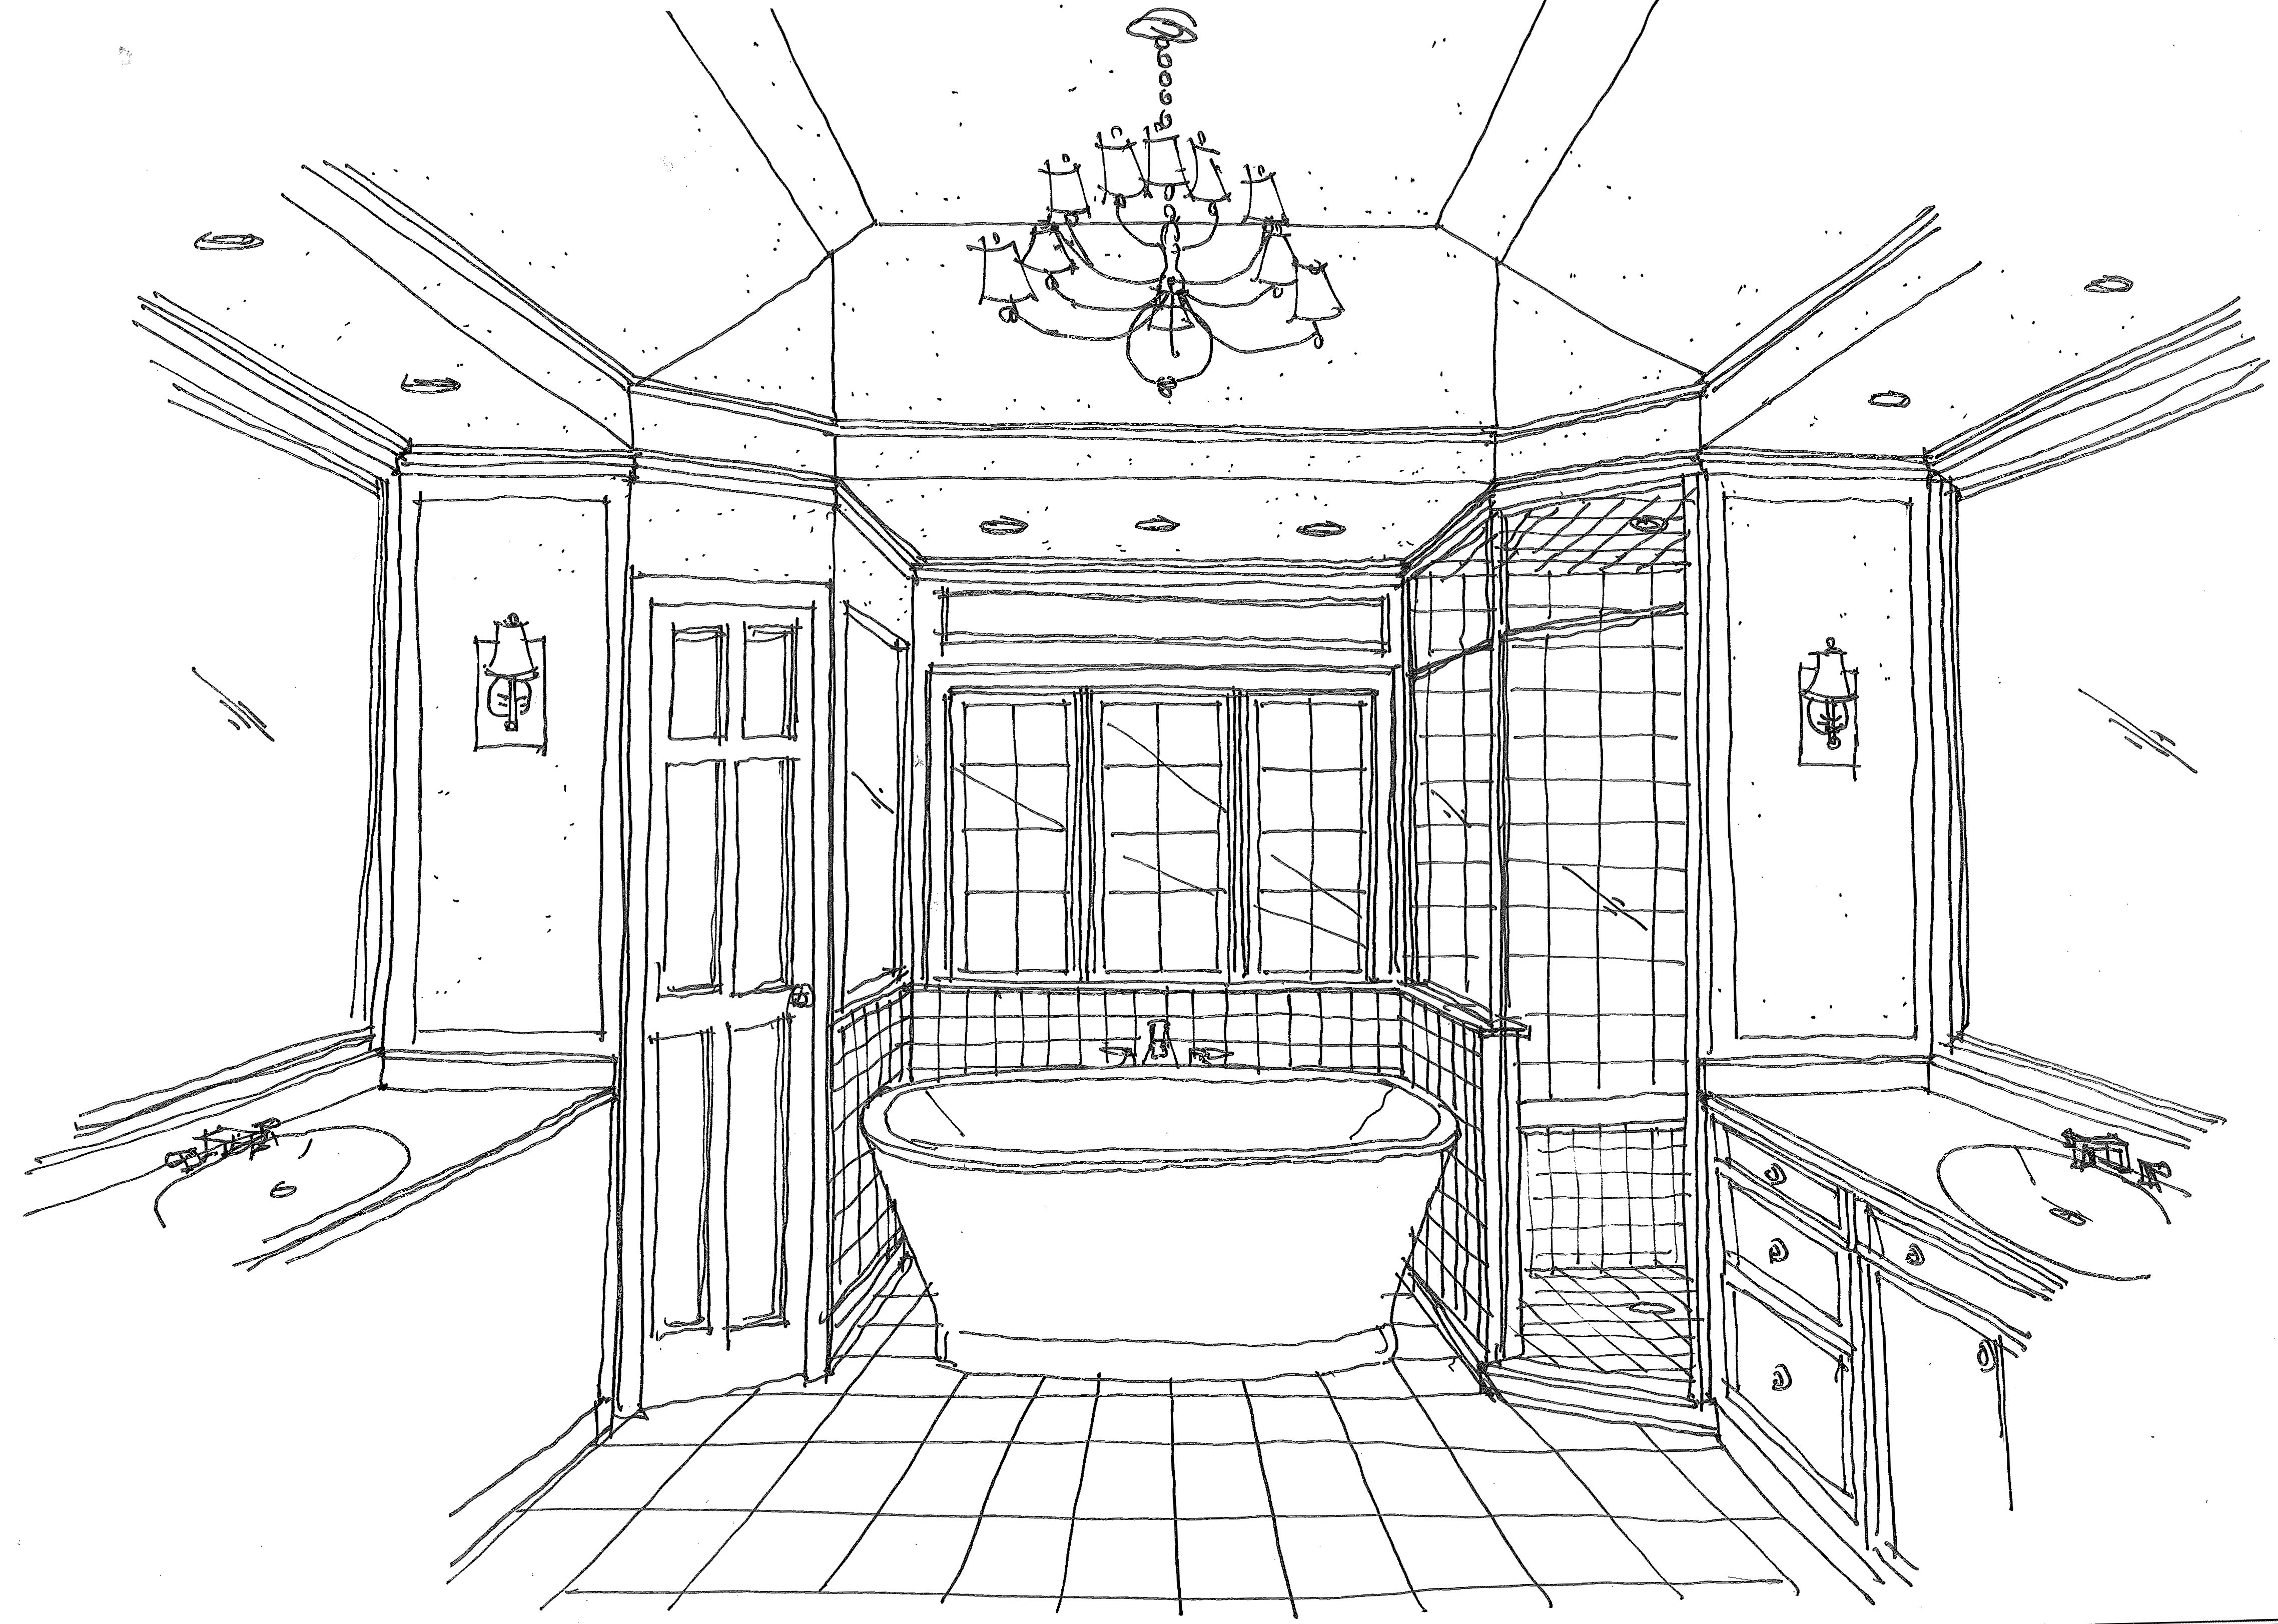 Sketch For Master Bath Renovation Architecture Bathroom Home Design Plans Home Interior Design